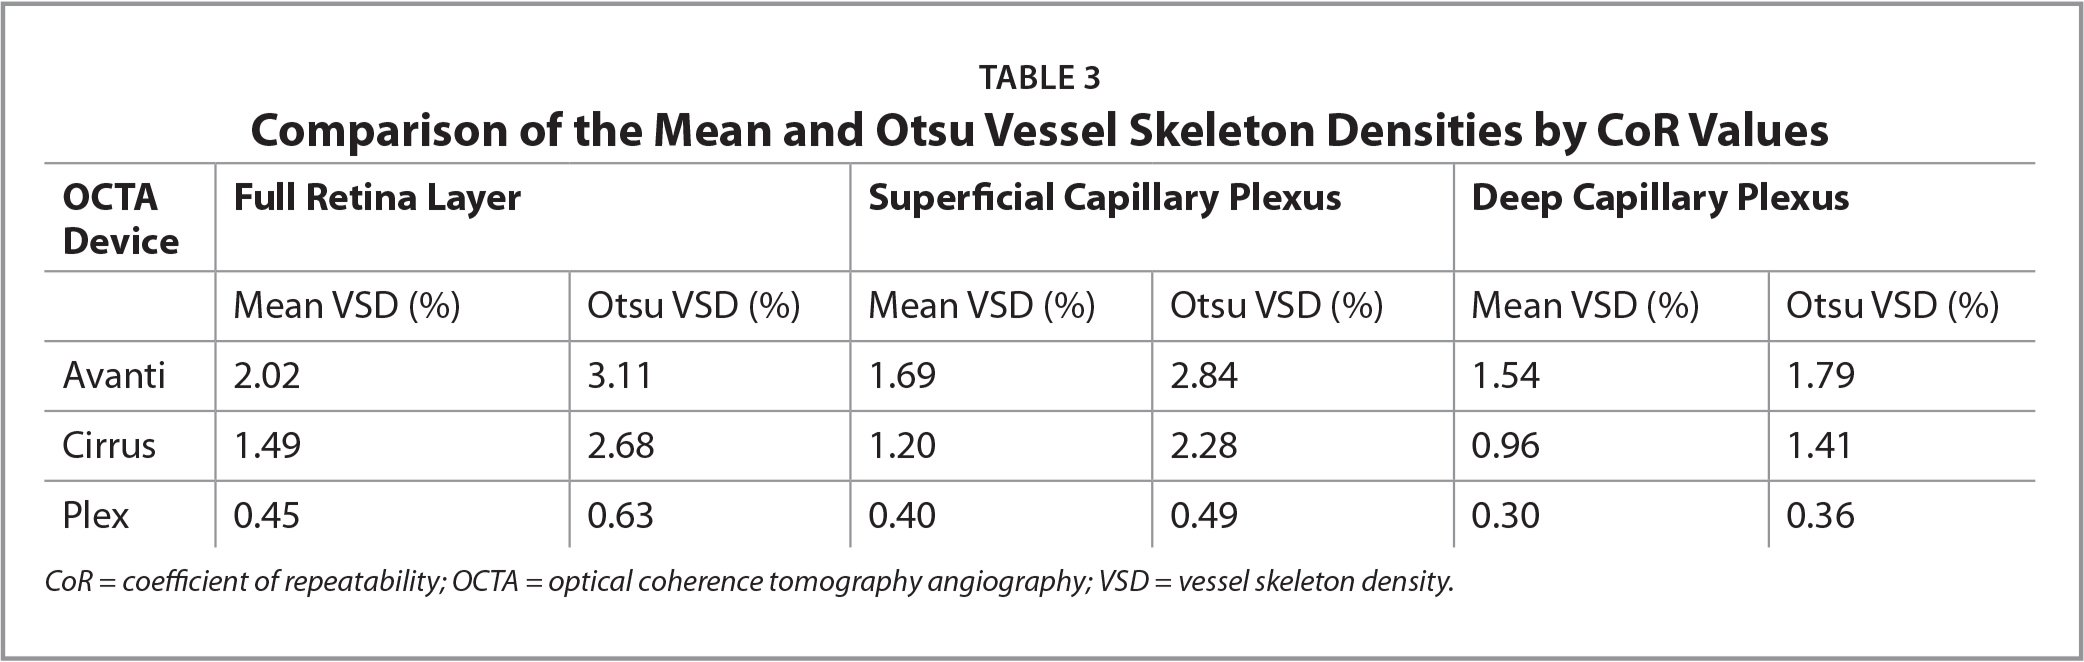 Comparison of the Mean and Otsu Vessel Skeleton Densities by CoR Values